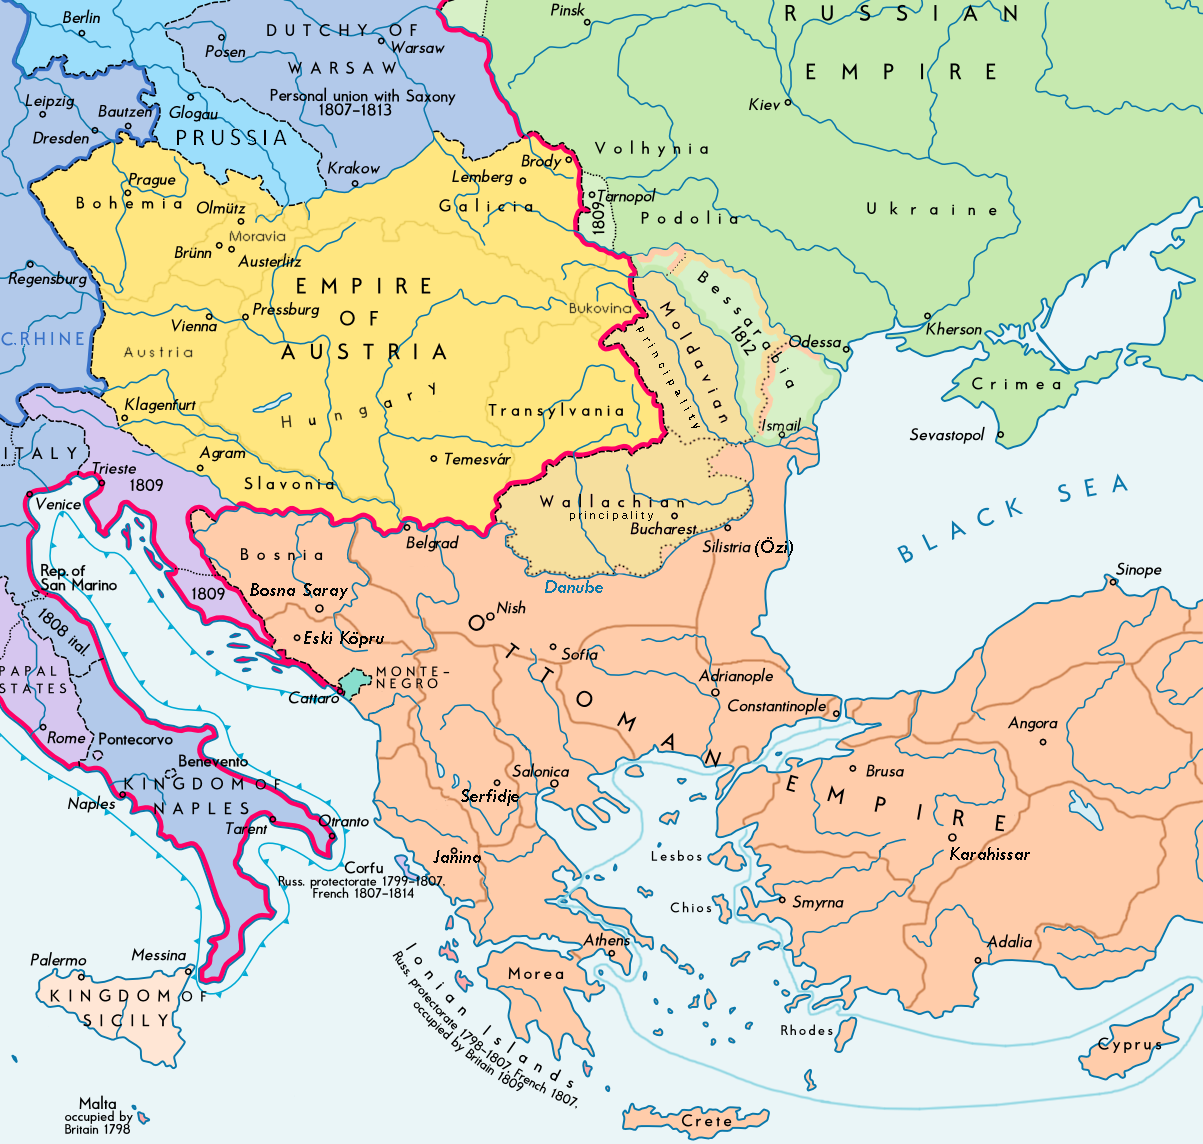 File:Southeast Europe 1812 map en.PNG   Wikimedia Commons